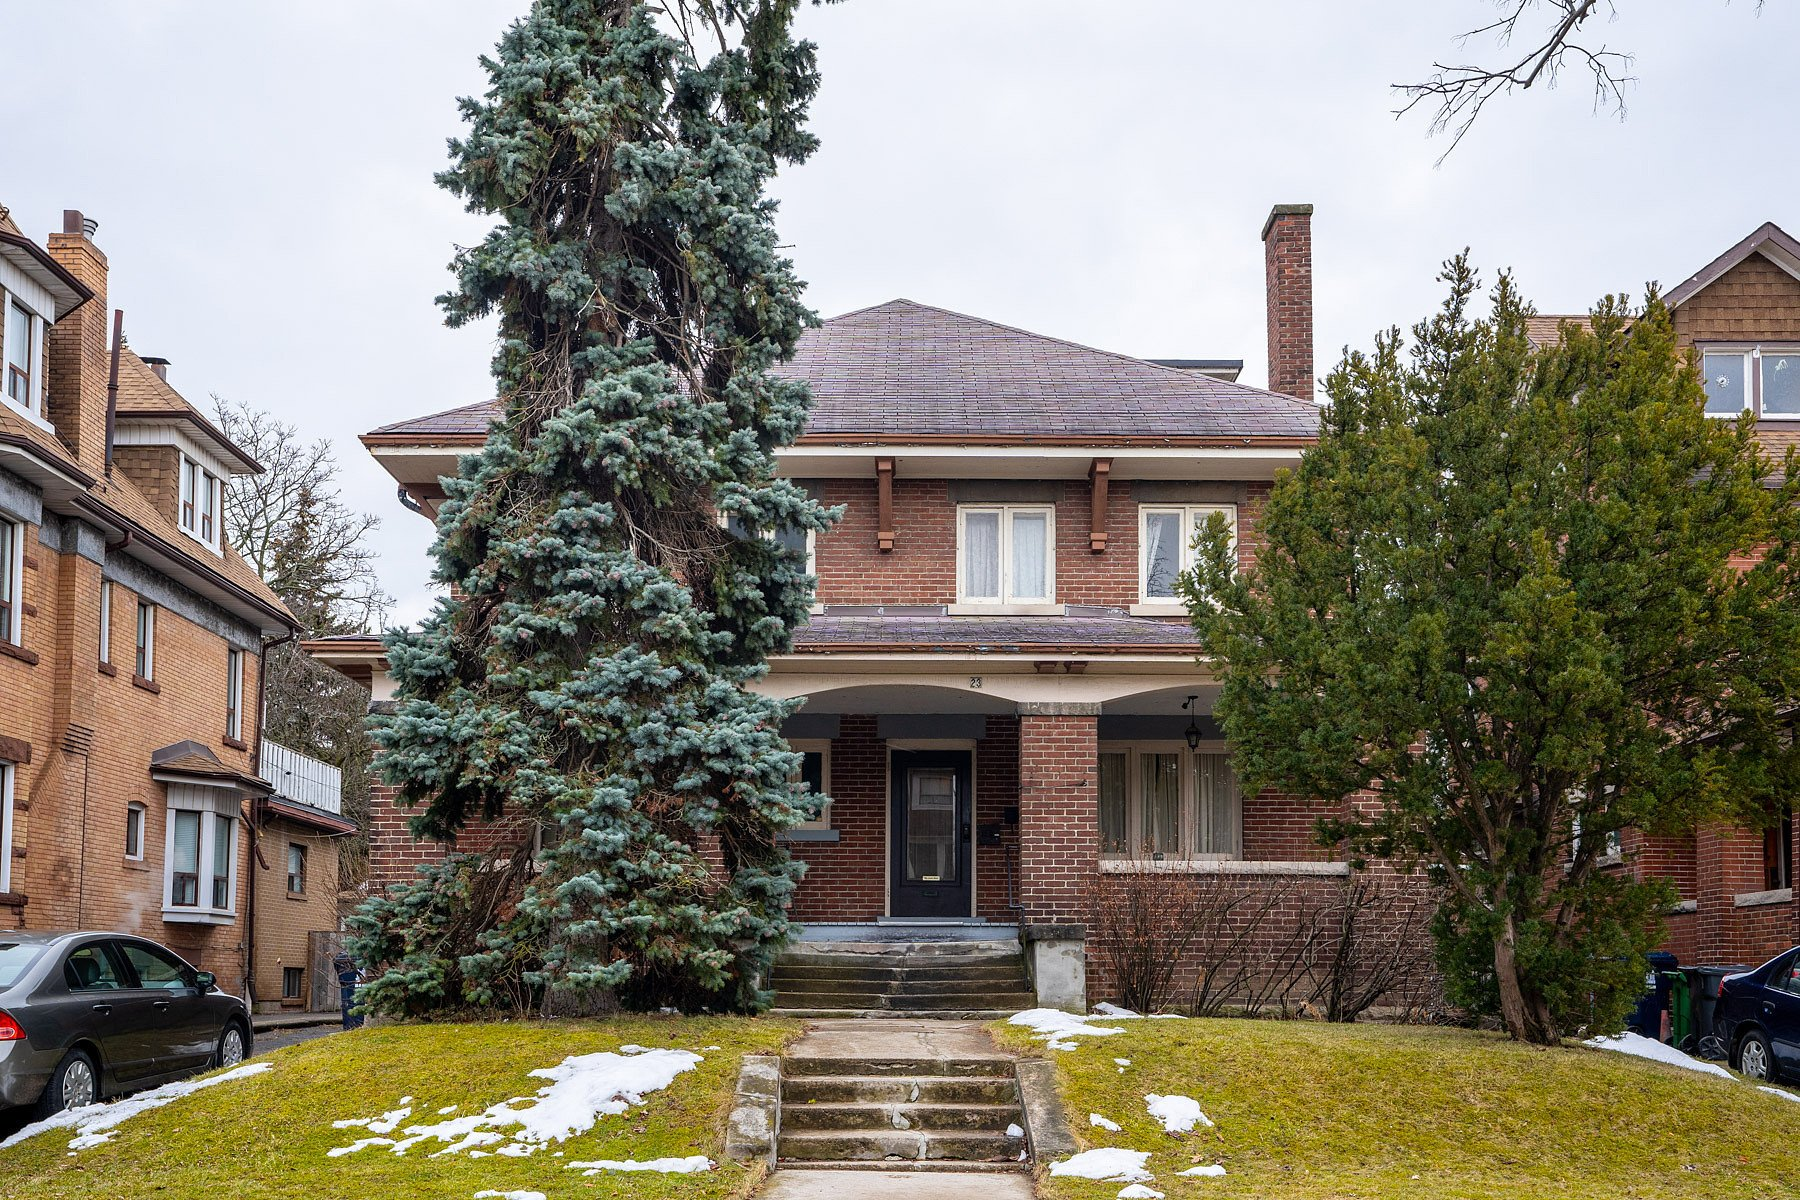 House in East York, Ontario, Canada 1